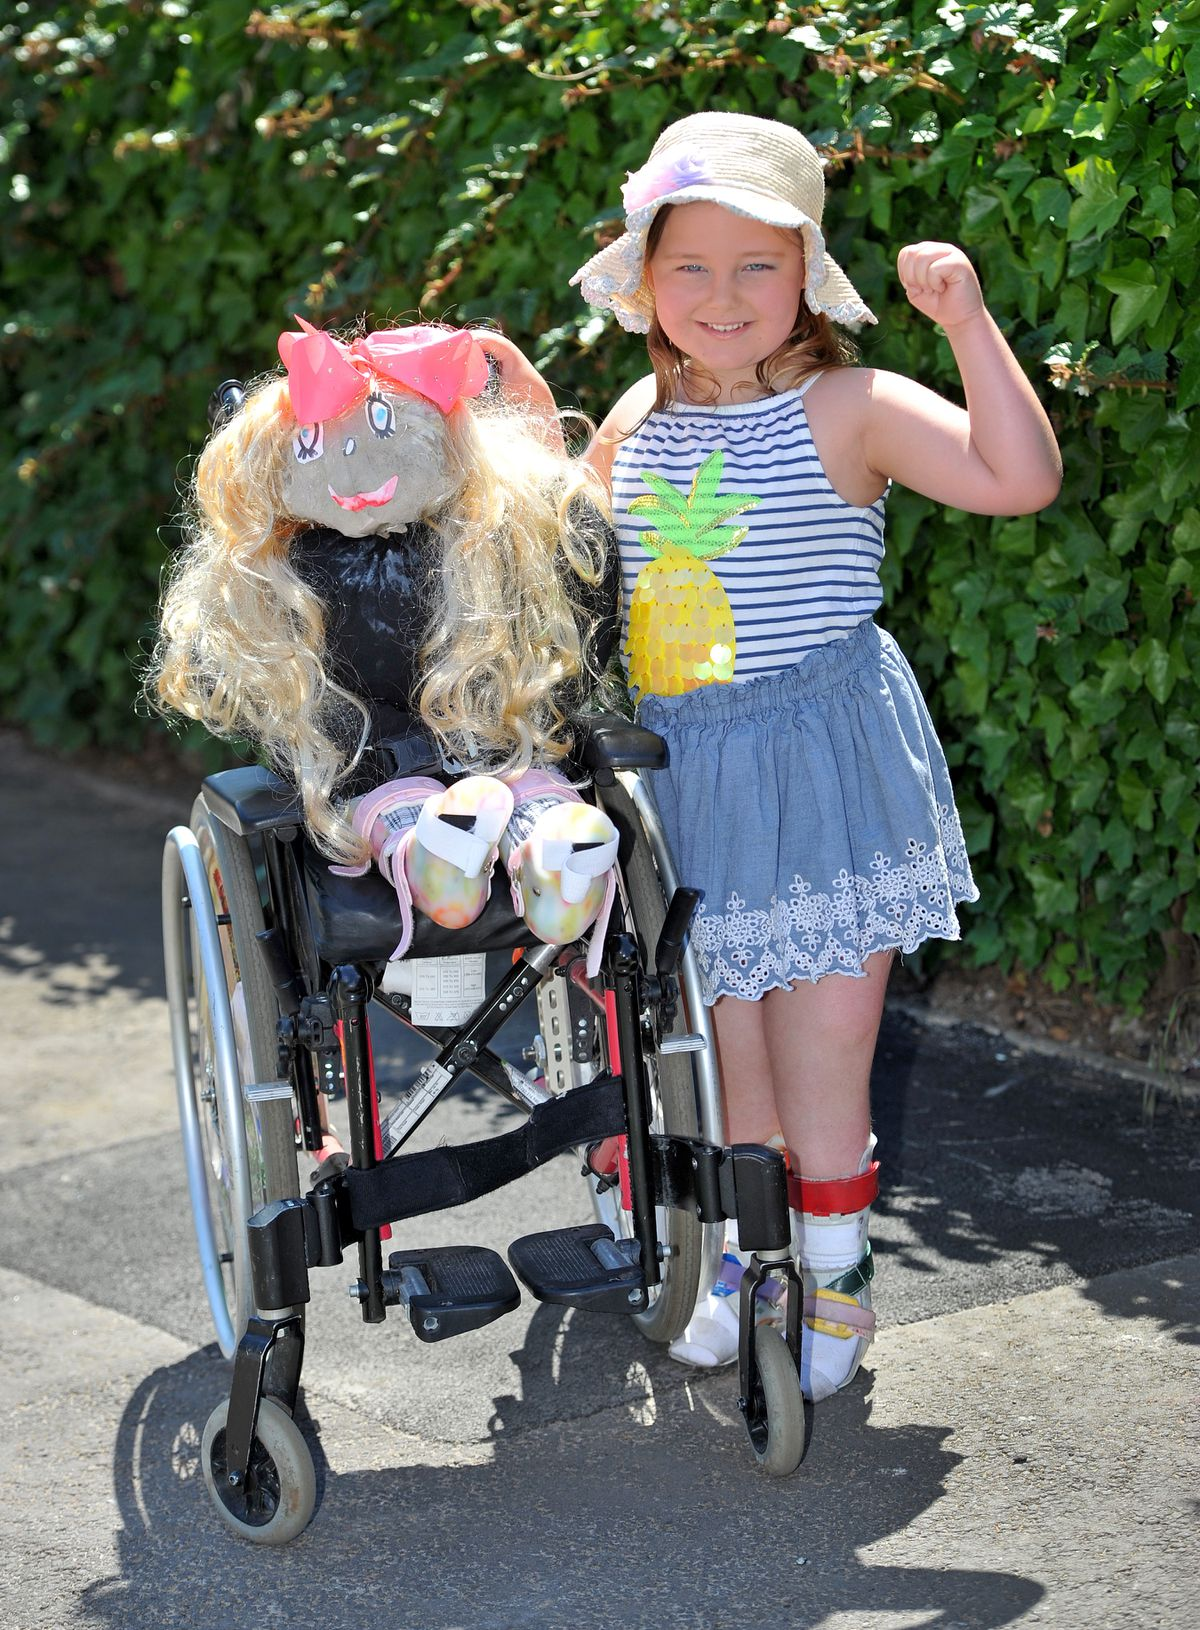 Five year old Amelia-Mae Smith, who has created a scarecrow in a wheelchair based on herself